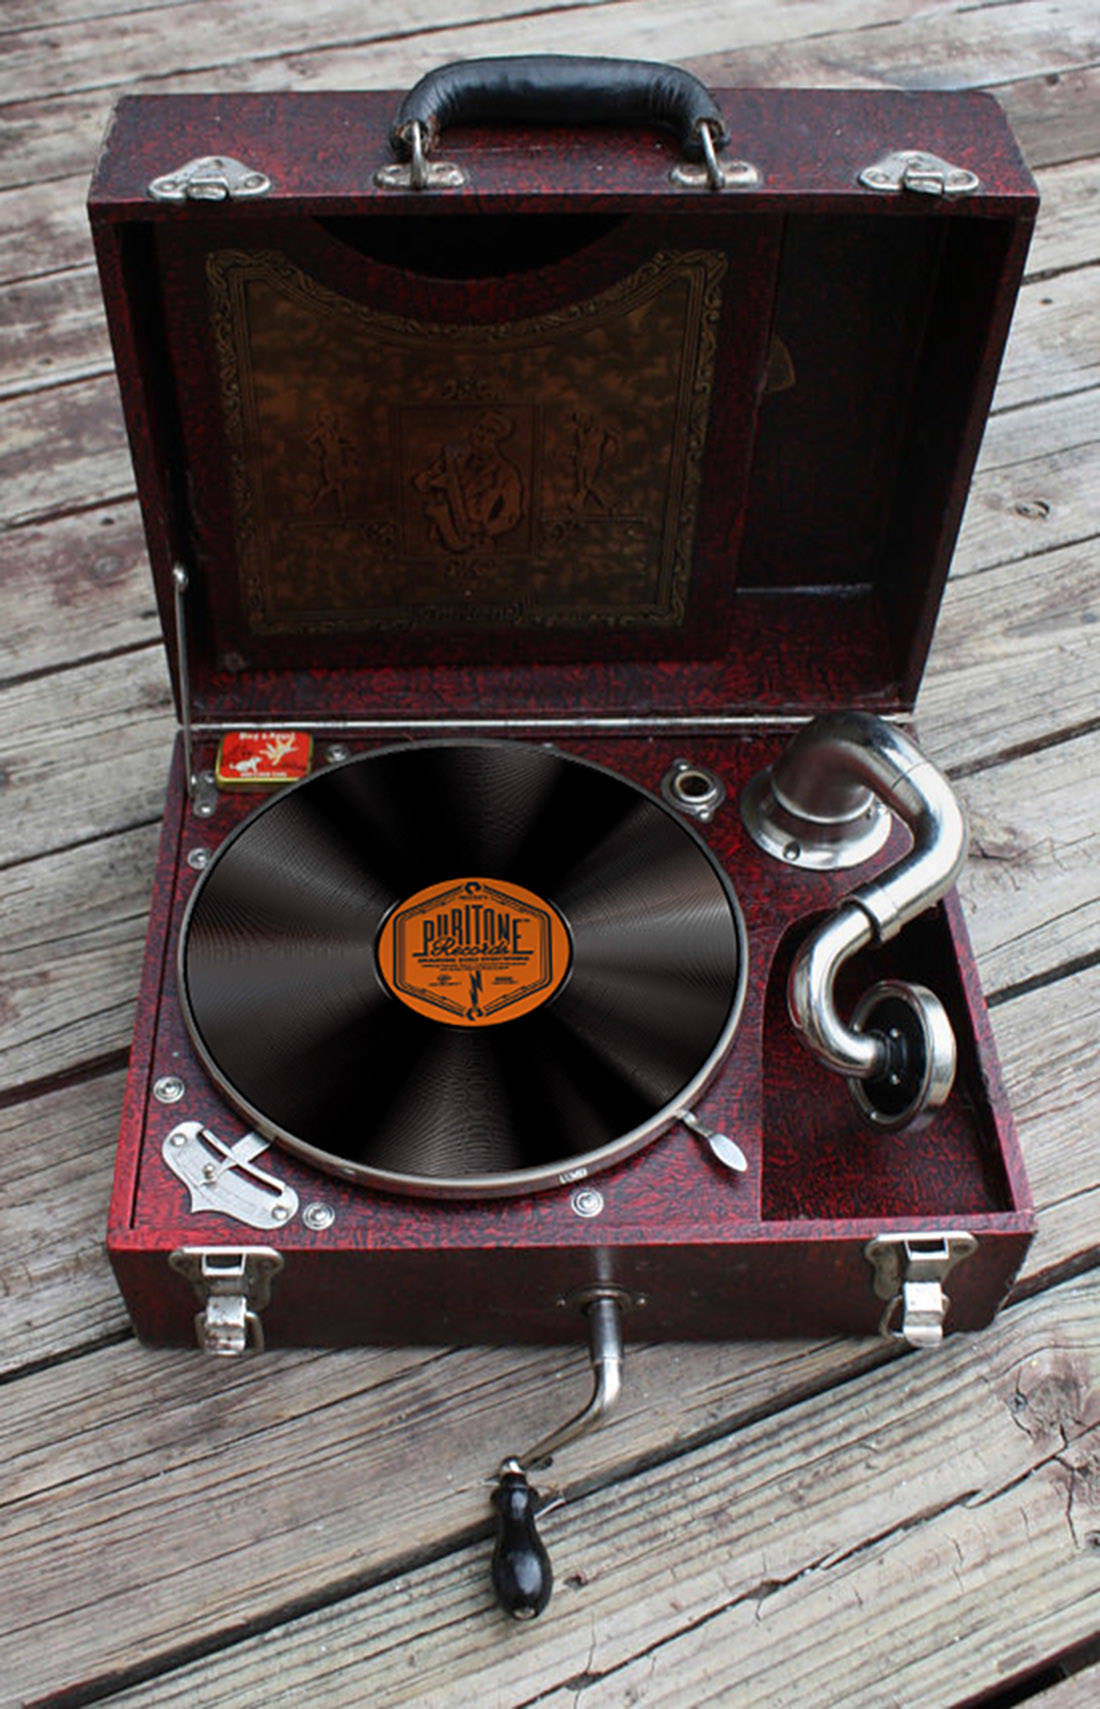 PURITONE Portable Phonograph Gramophone Record Player